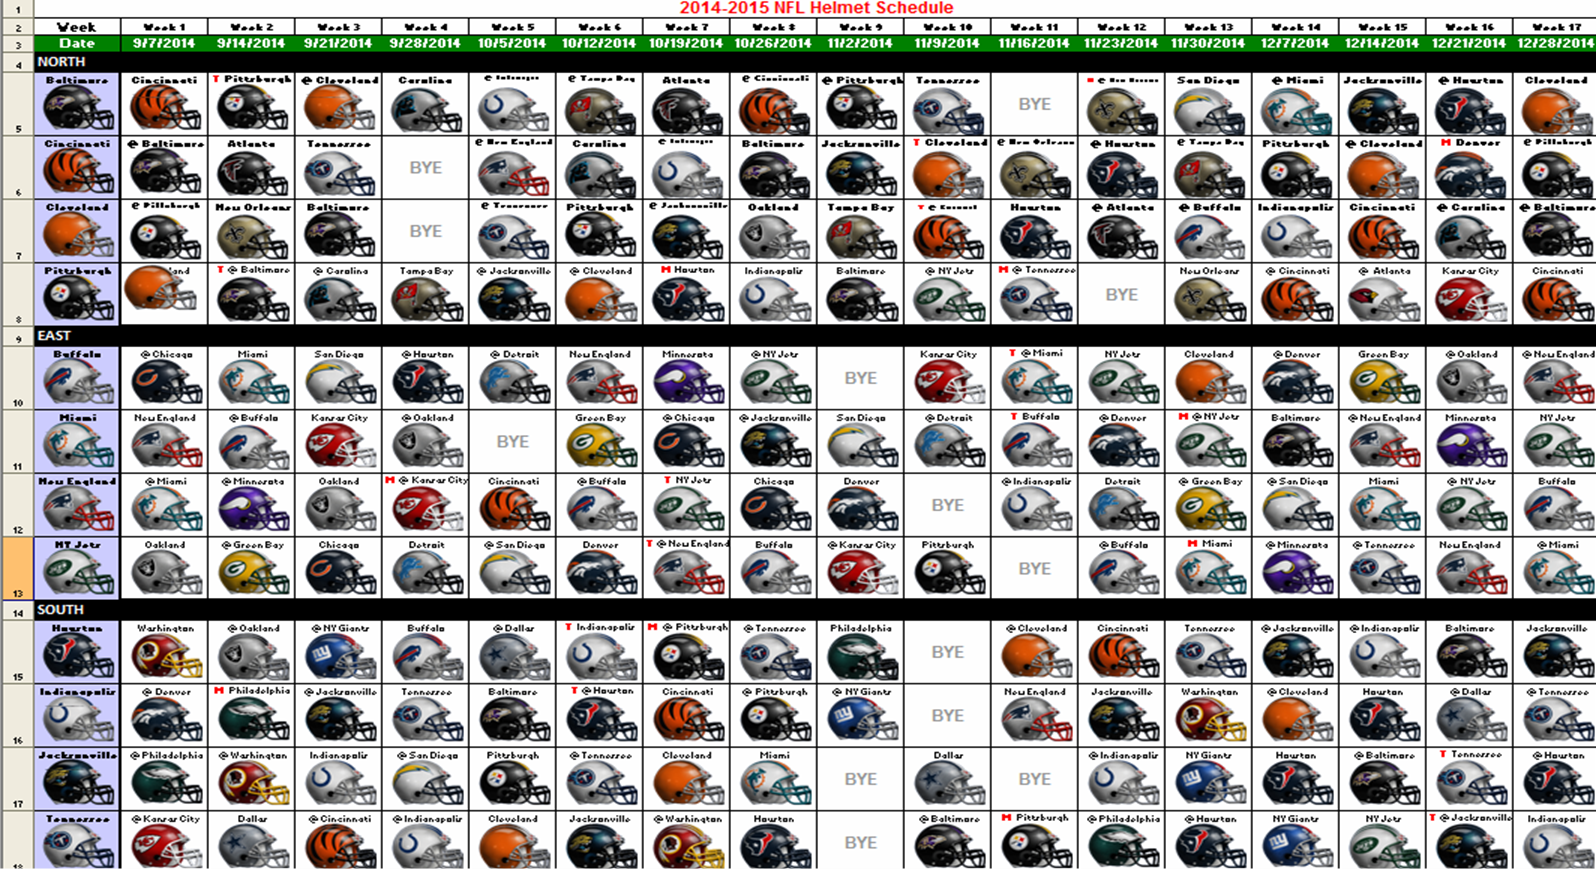 Download a 2014 NFL schedule with all the team's helmet ...